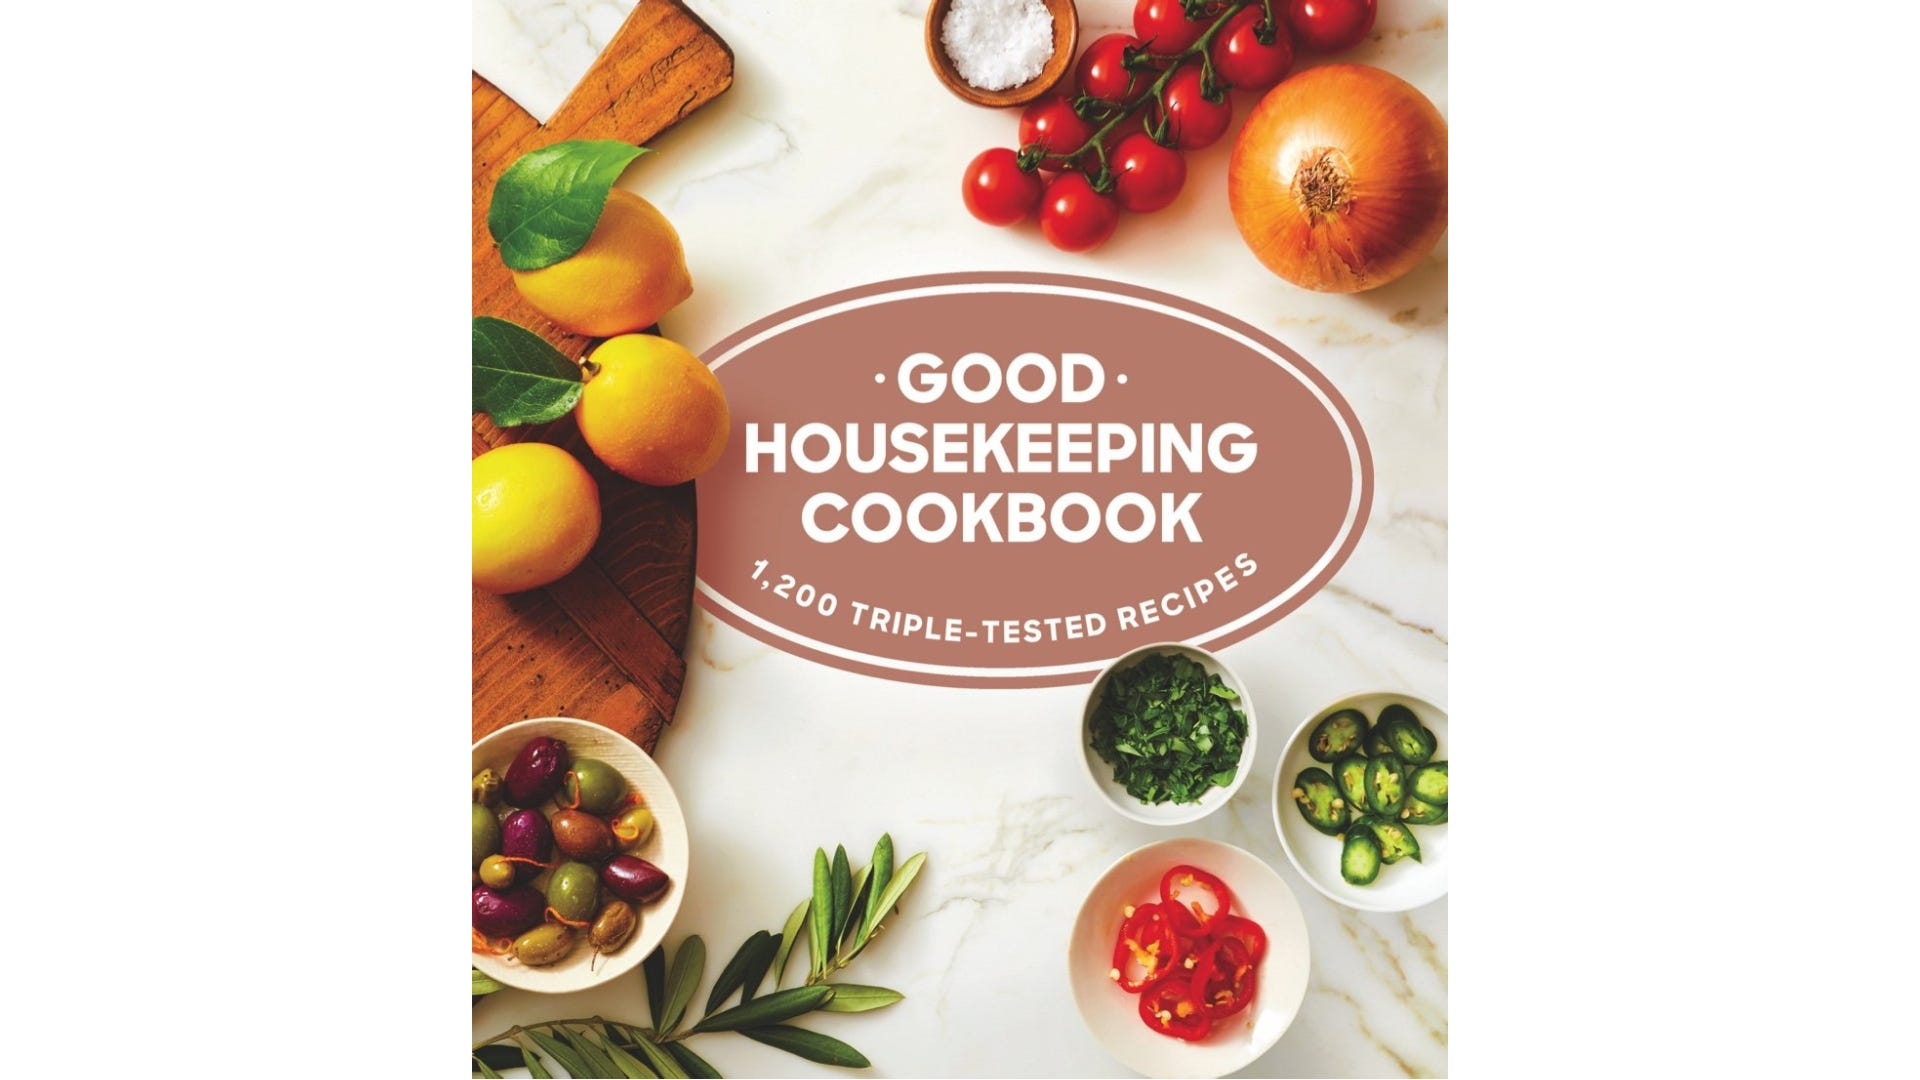 A book cover with several bowls of ingredients and a wooden cutting board.